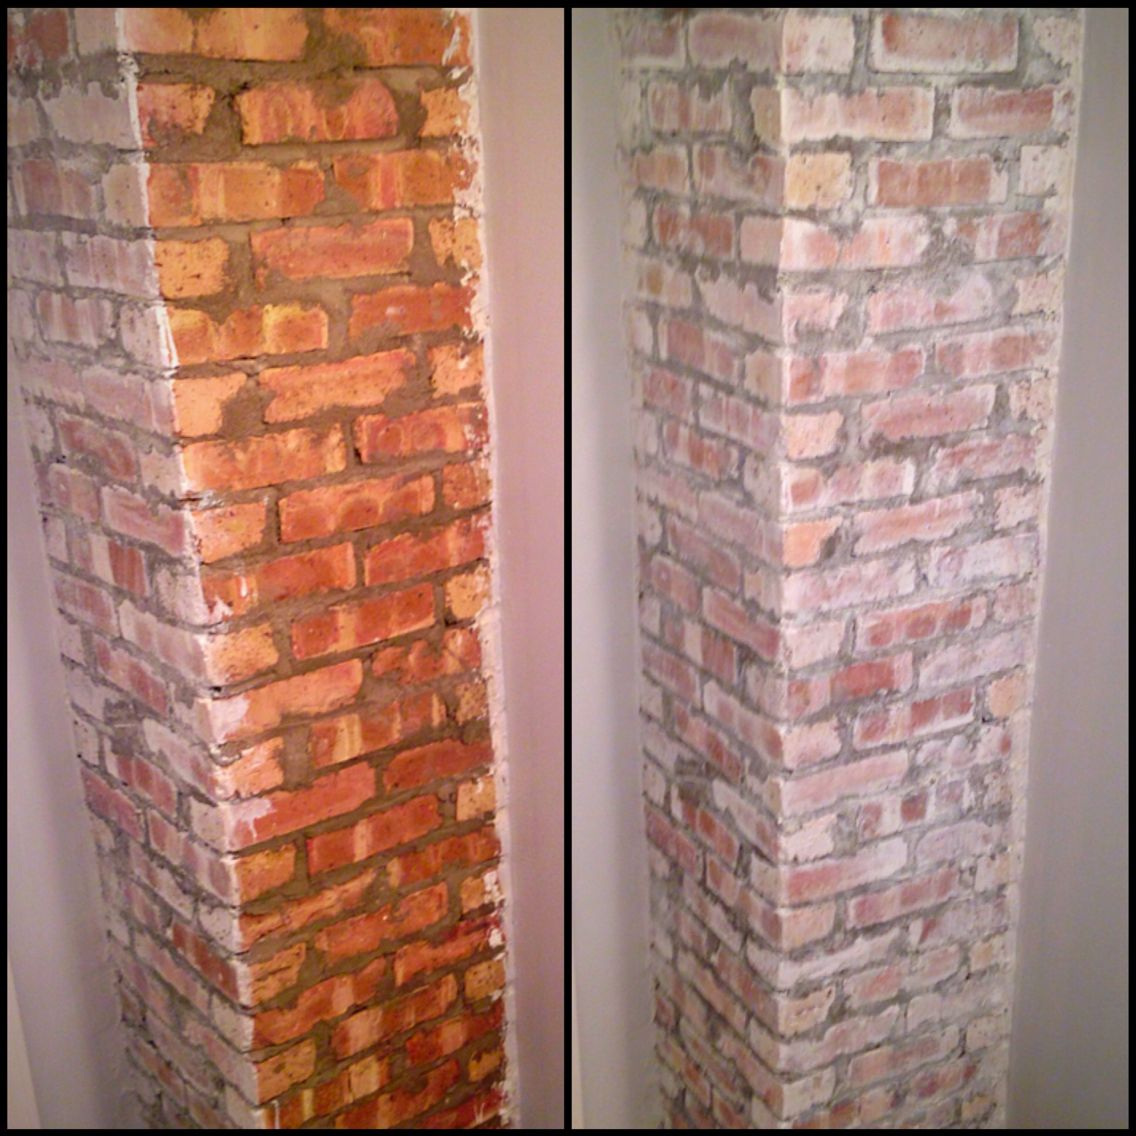 Whitewashed brick Old exposed chimney in bathroom 1 wire brush